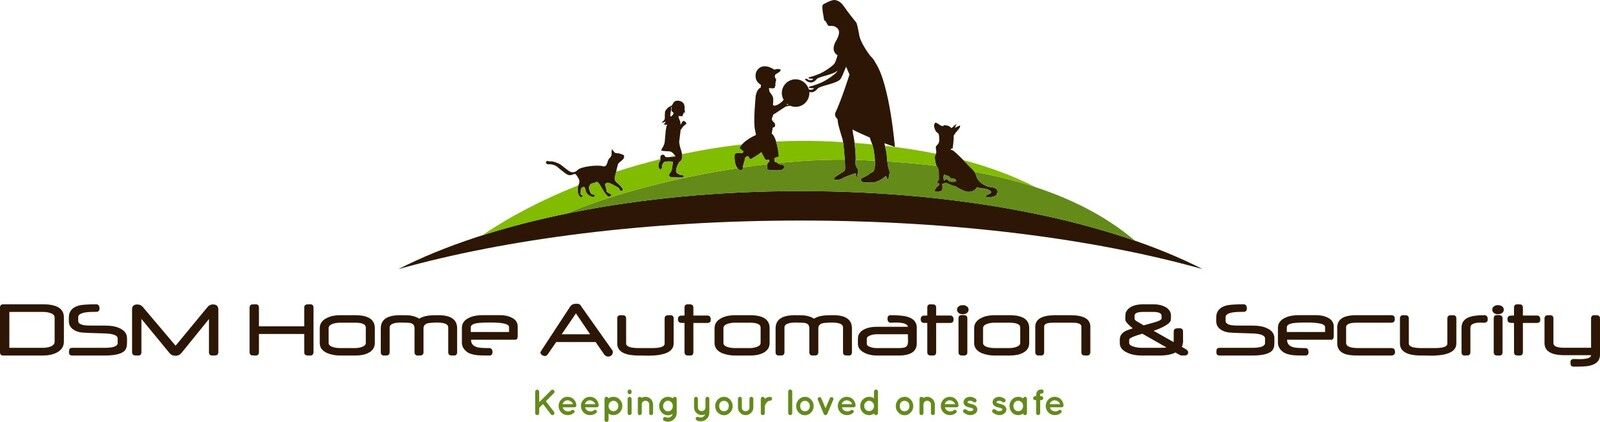 DSM Home Automation & Security